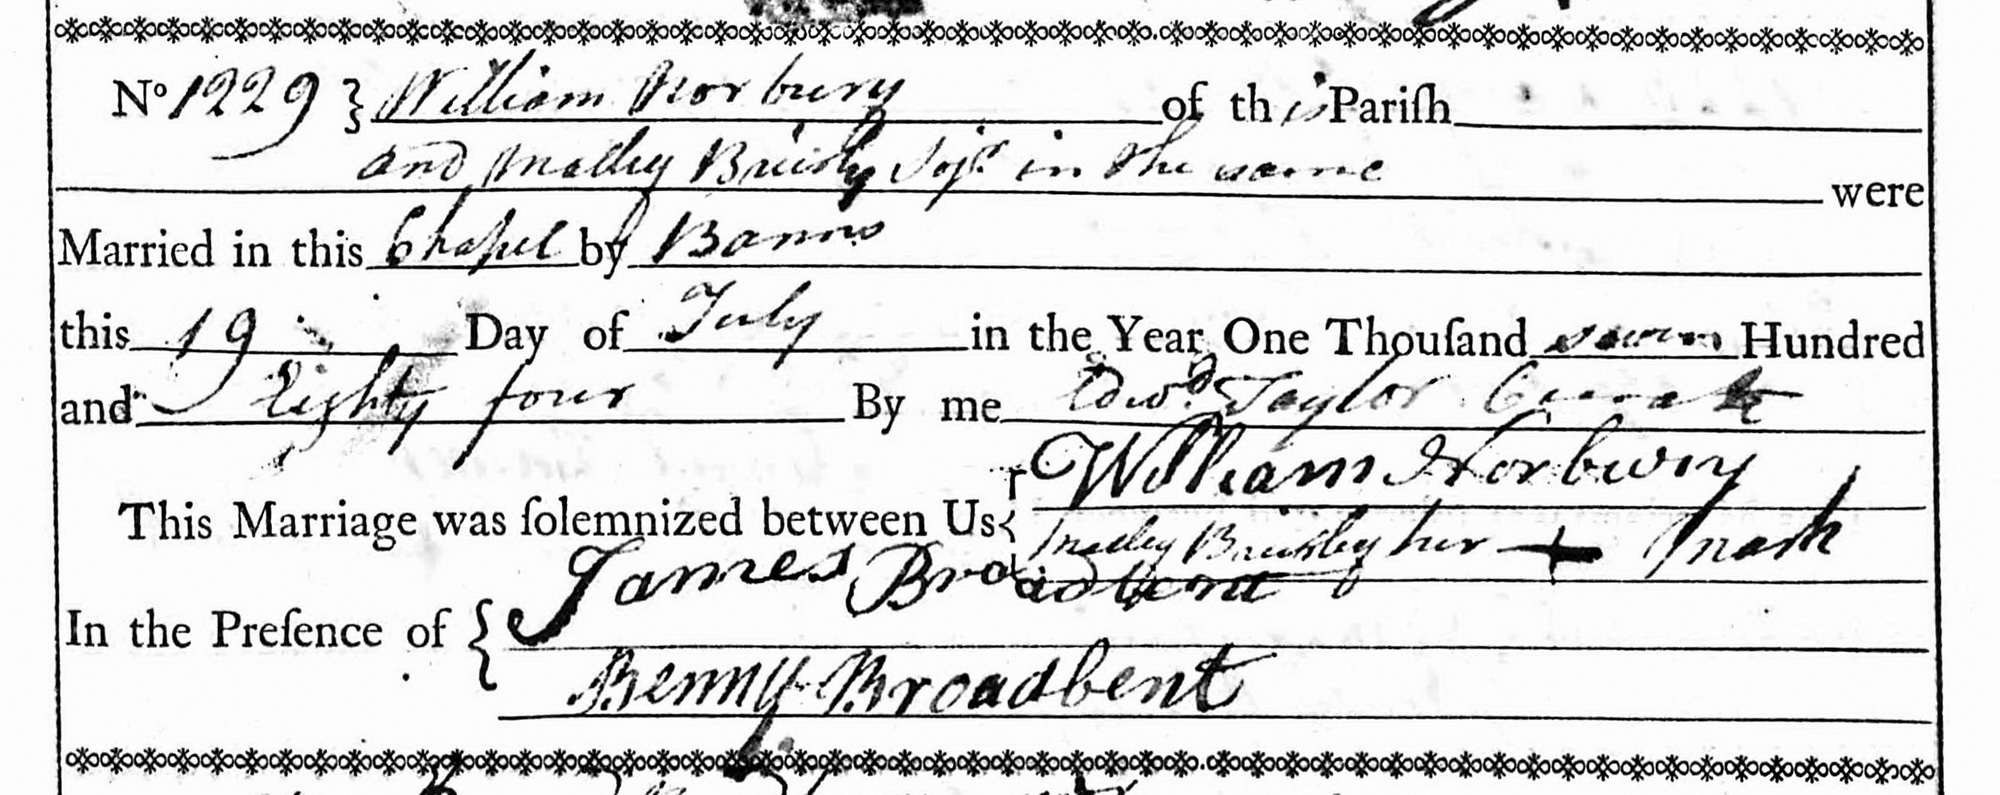 Parish Register, St Chad, Saddleworth: marriage of William Norbury and Malley Brierley